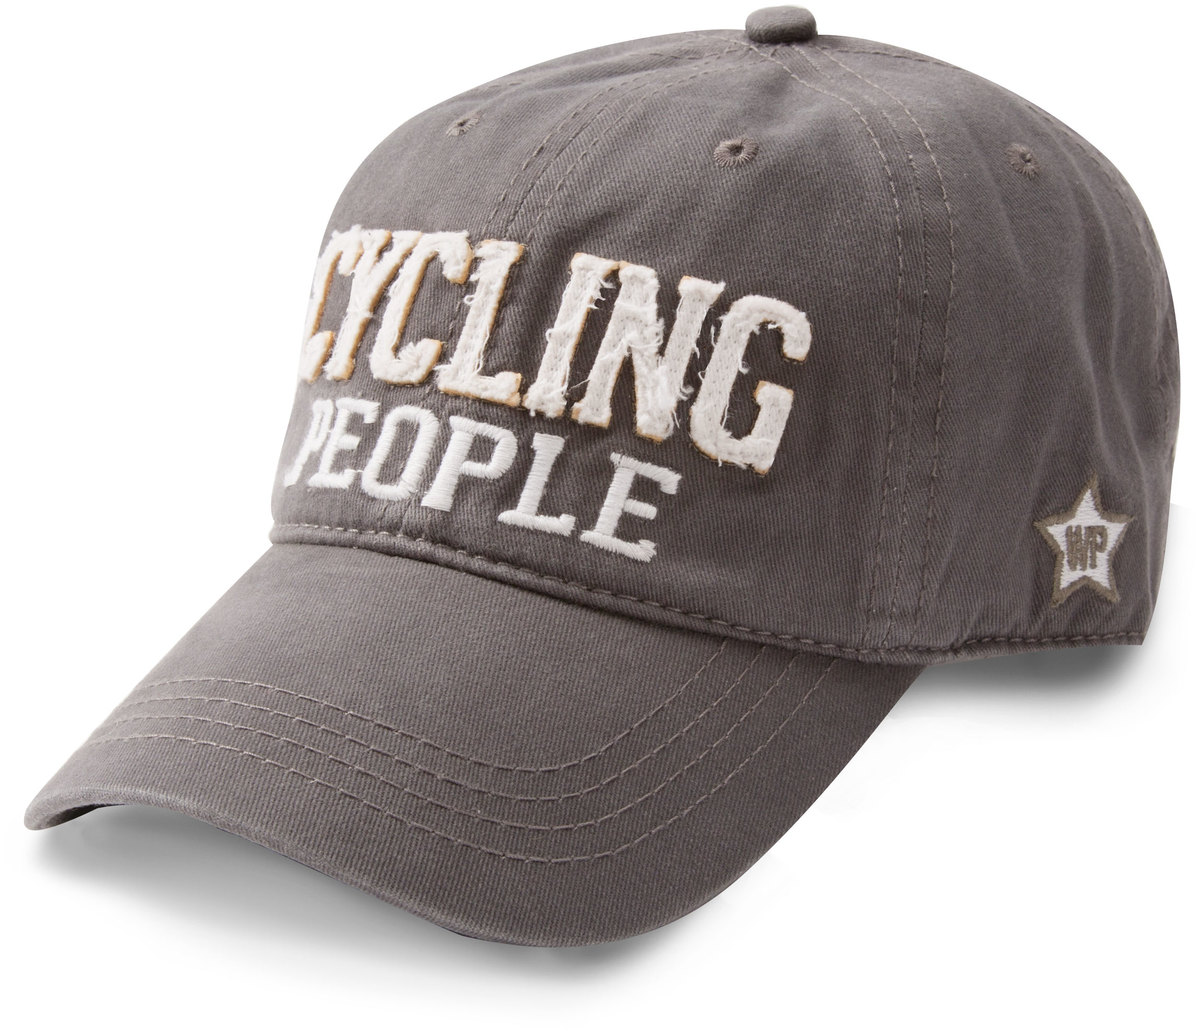 Cycling People by We People - Cycling People - Dark Gray Adjustable Hat